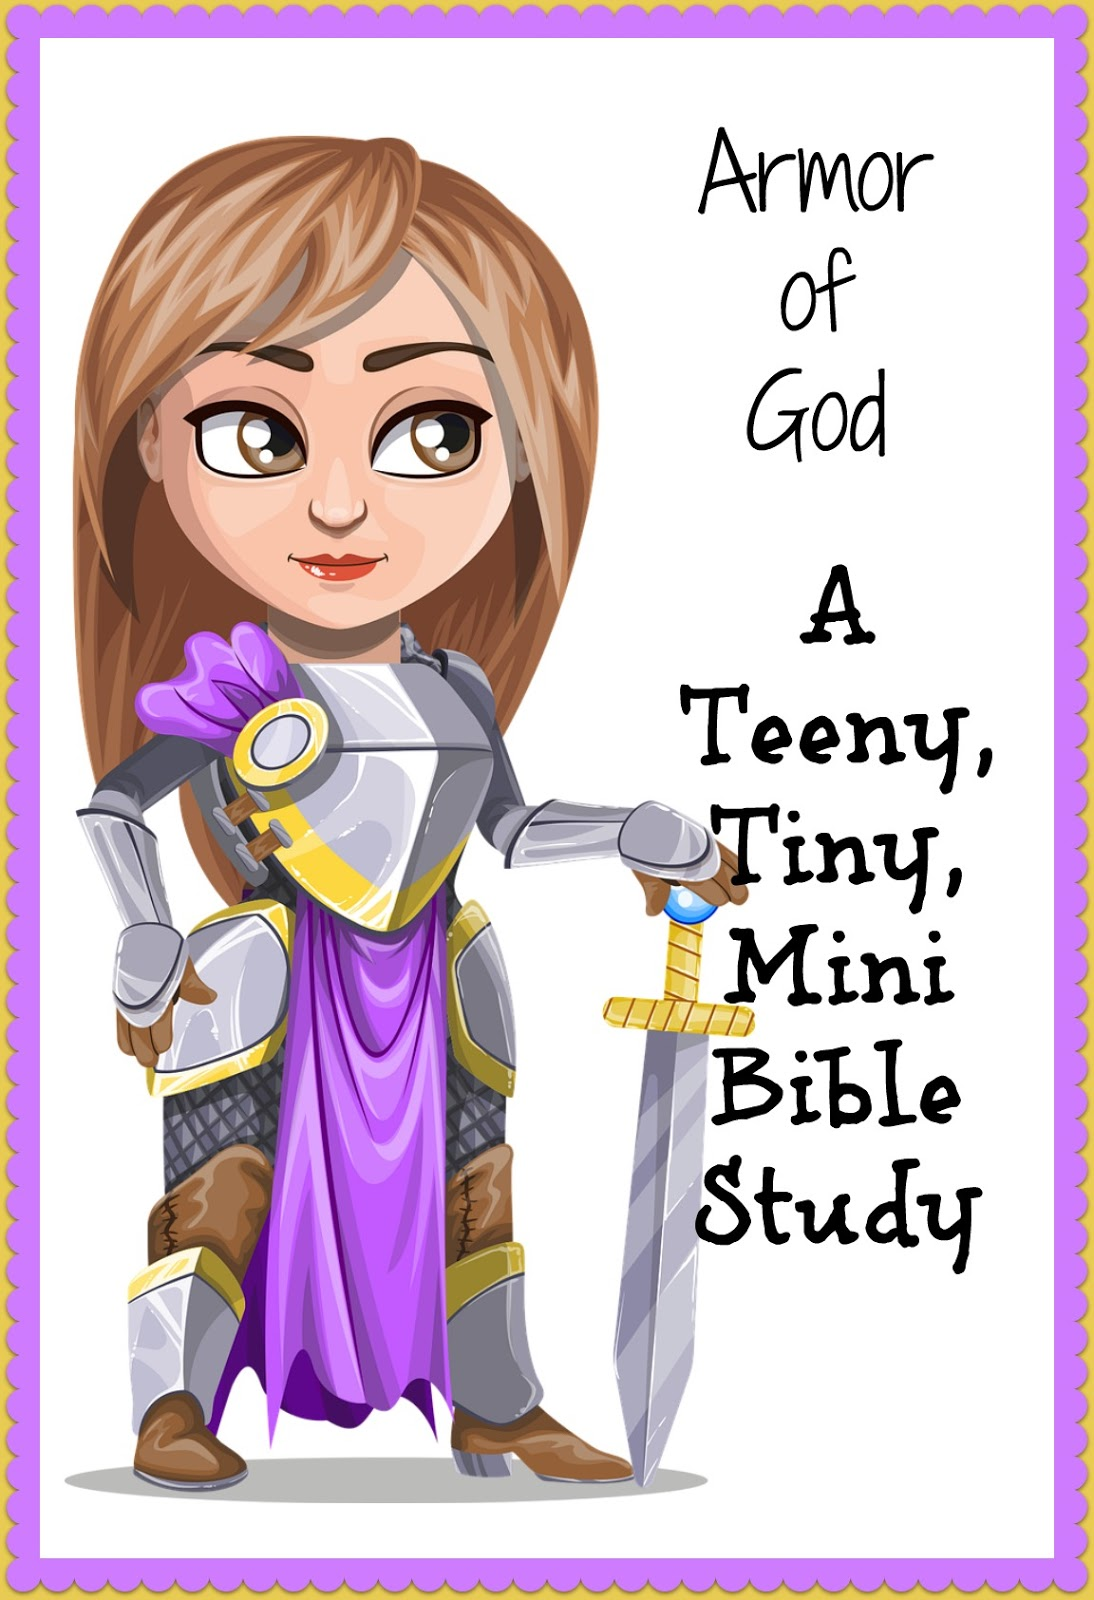 simple bible study outlines armor of god a teeny tiny mini